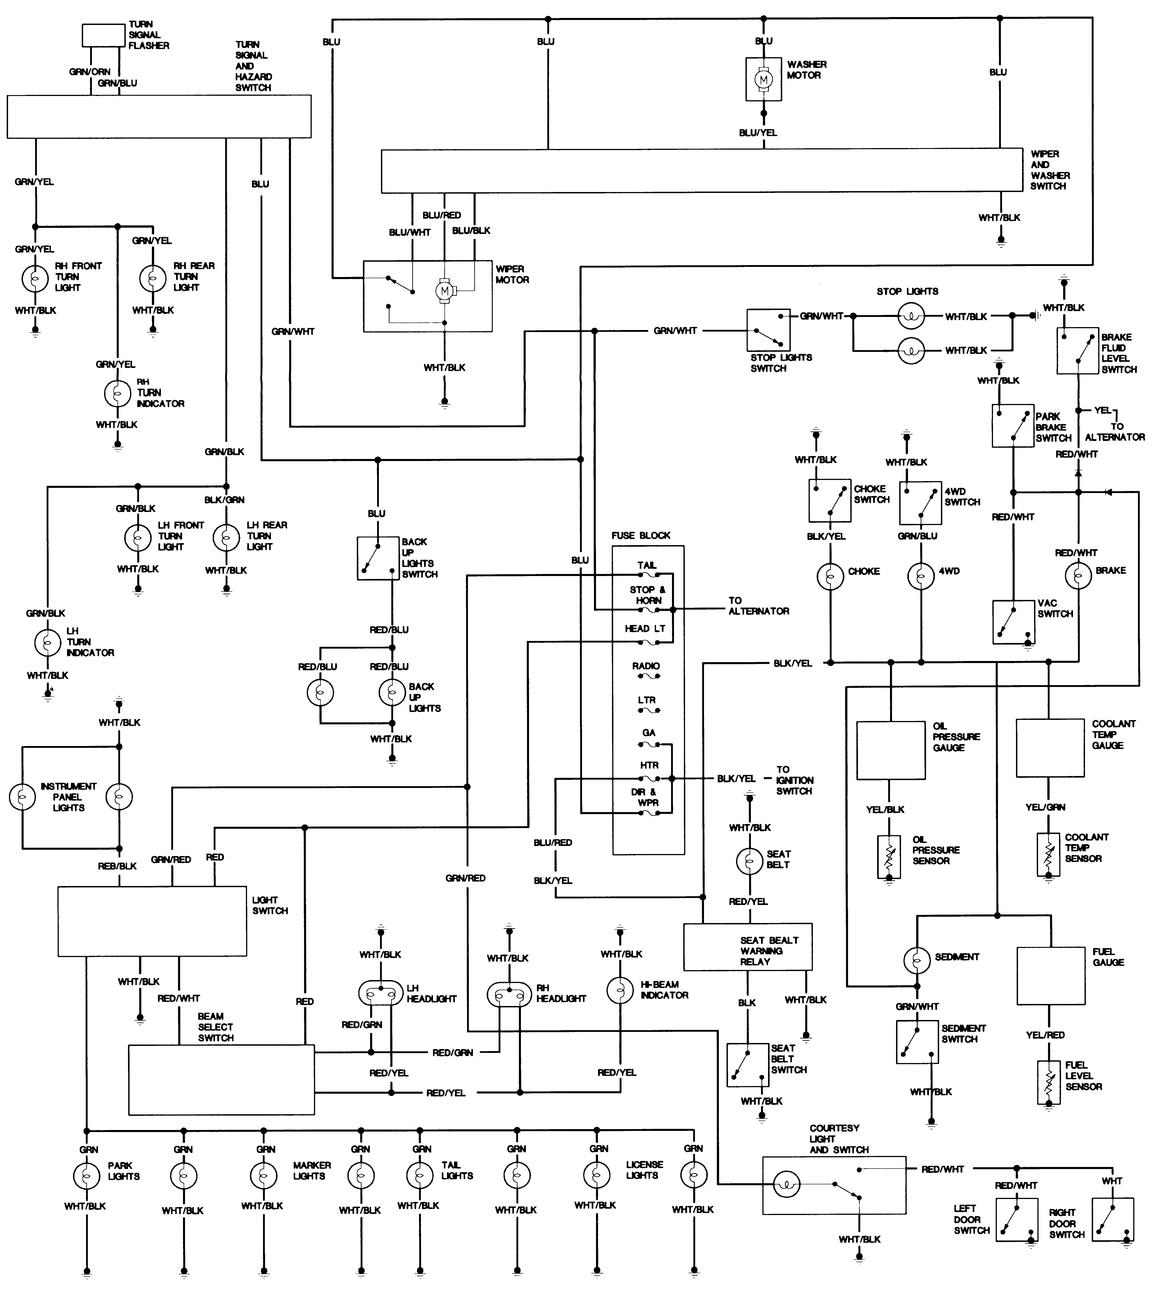 toyota vdj79 wiring diagram toyota land cruiser wiring diagram vdj79 circuit wiring and diagram hub